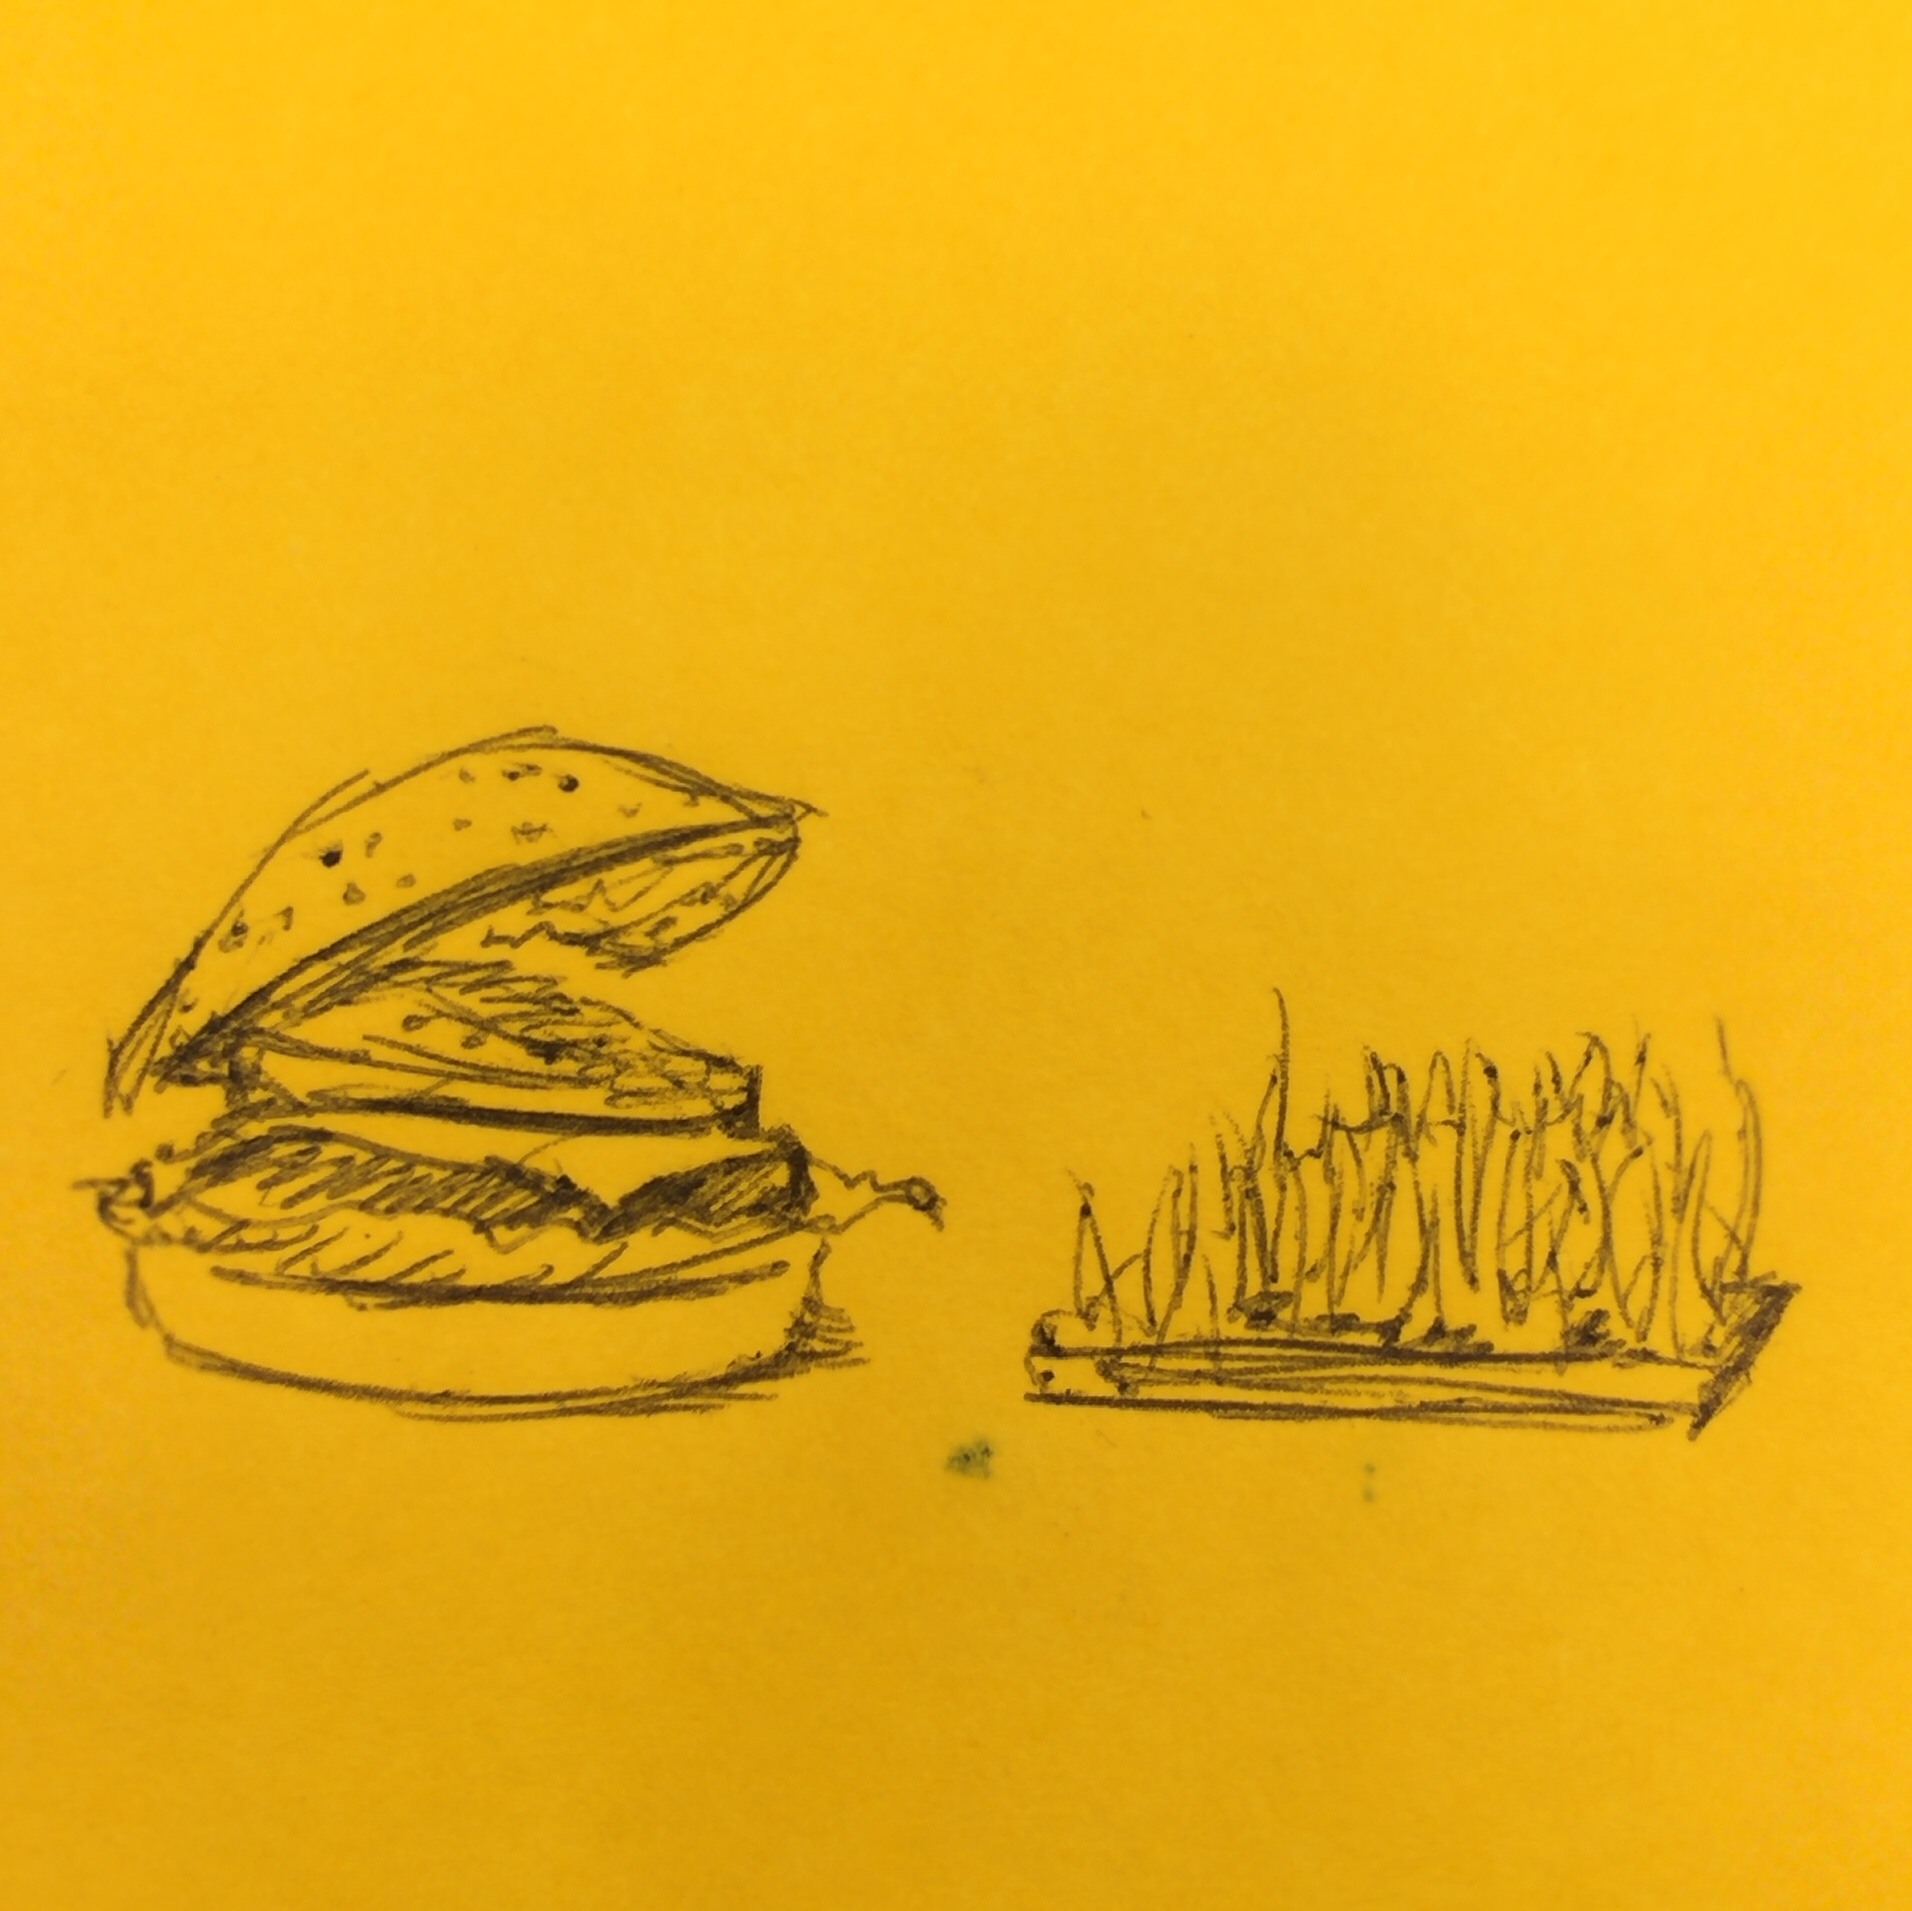 Drawing of a cheeseburger eating grass